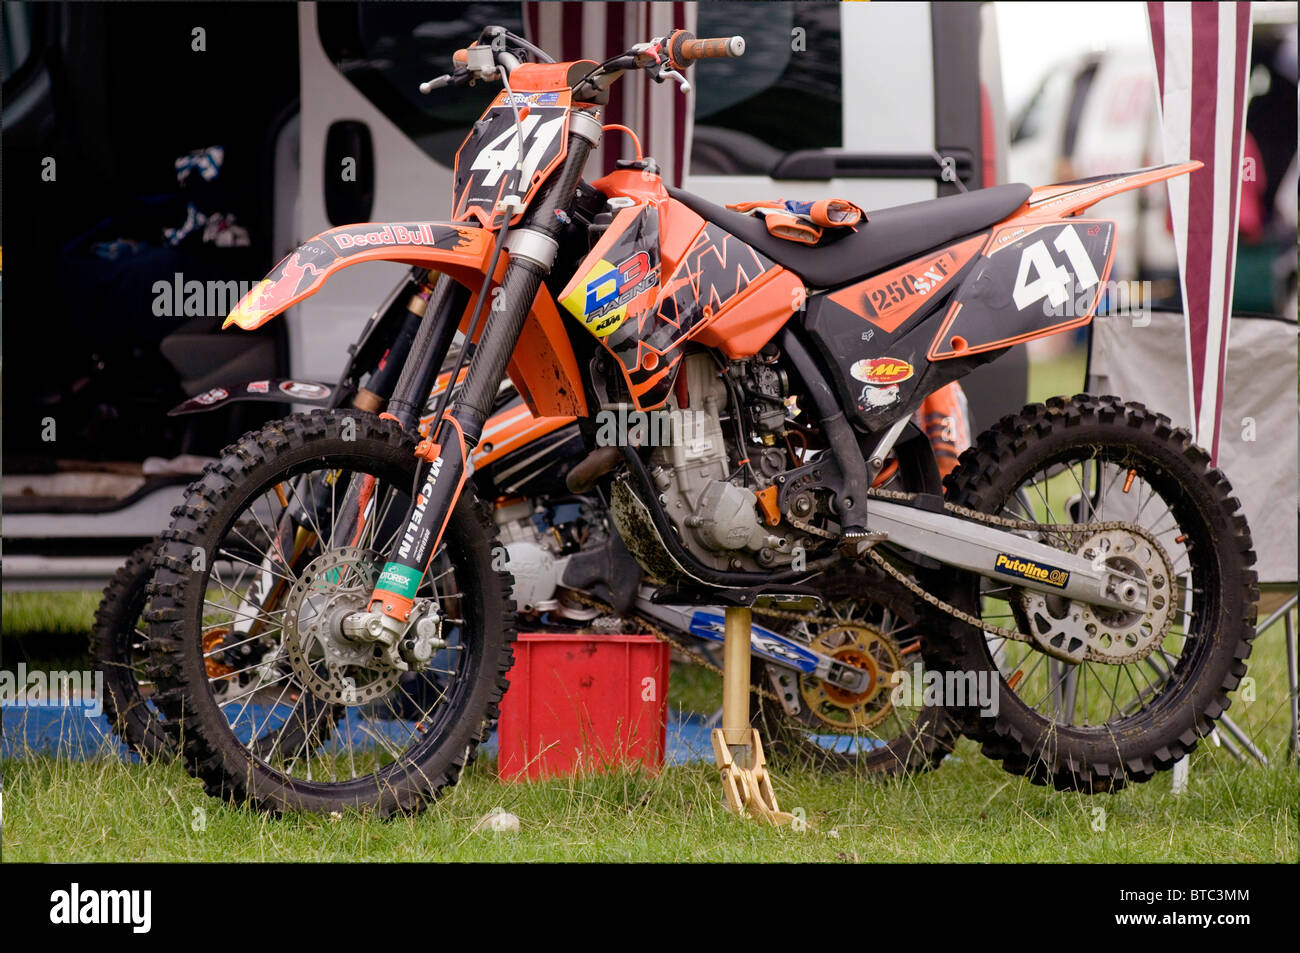 Motorcross bike motocross motor moto cross x ktm off road - Moto crosse ktm ...